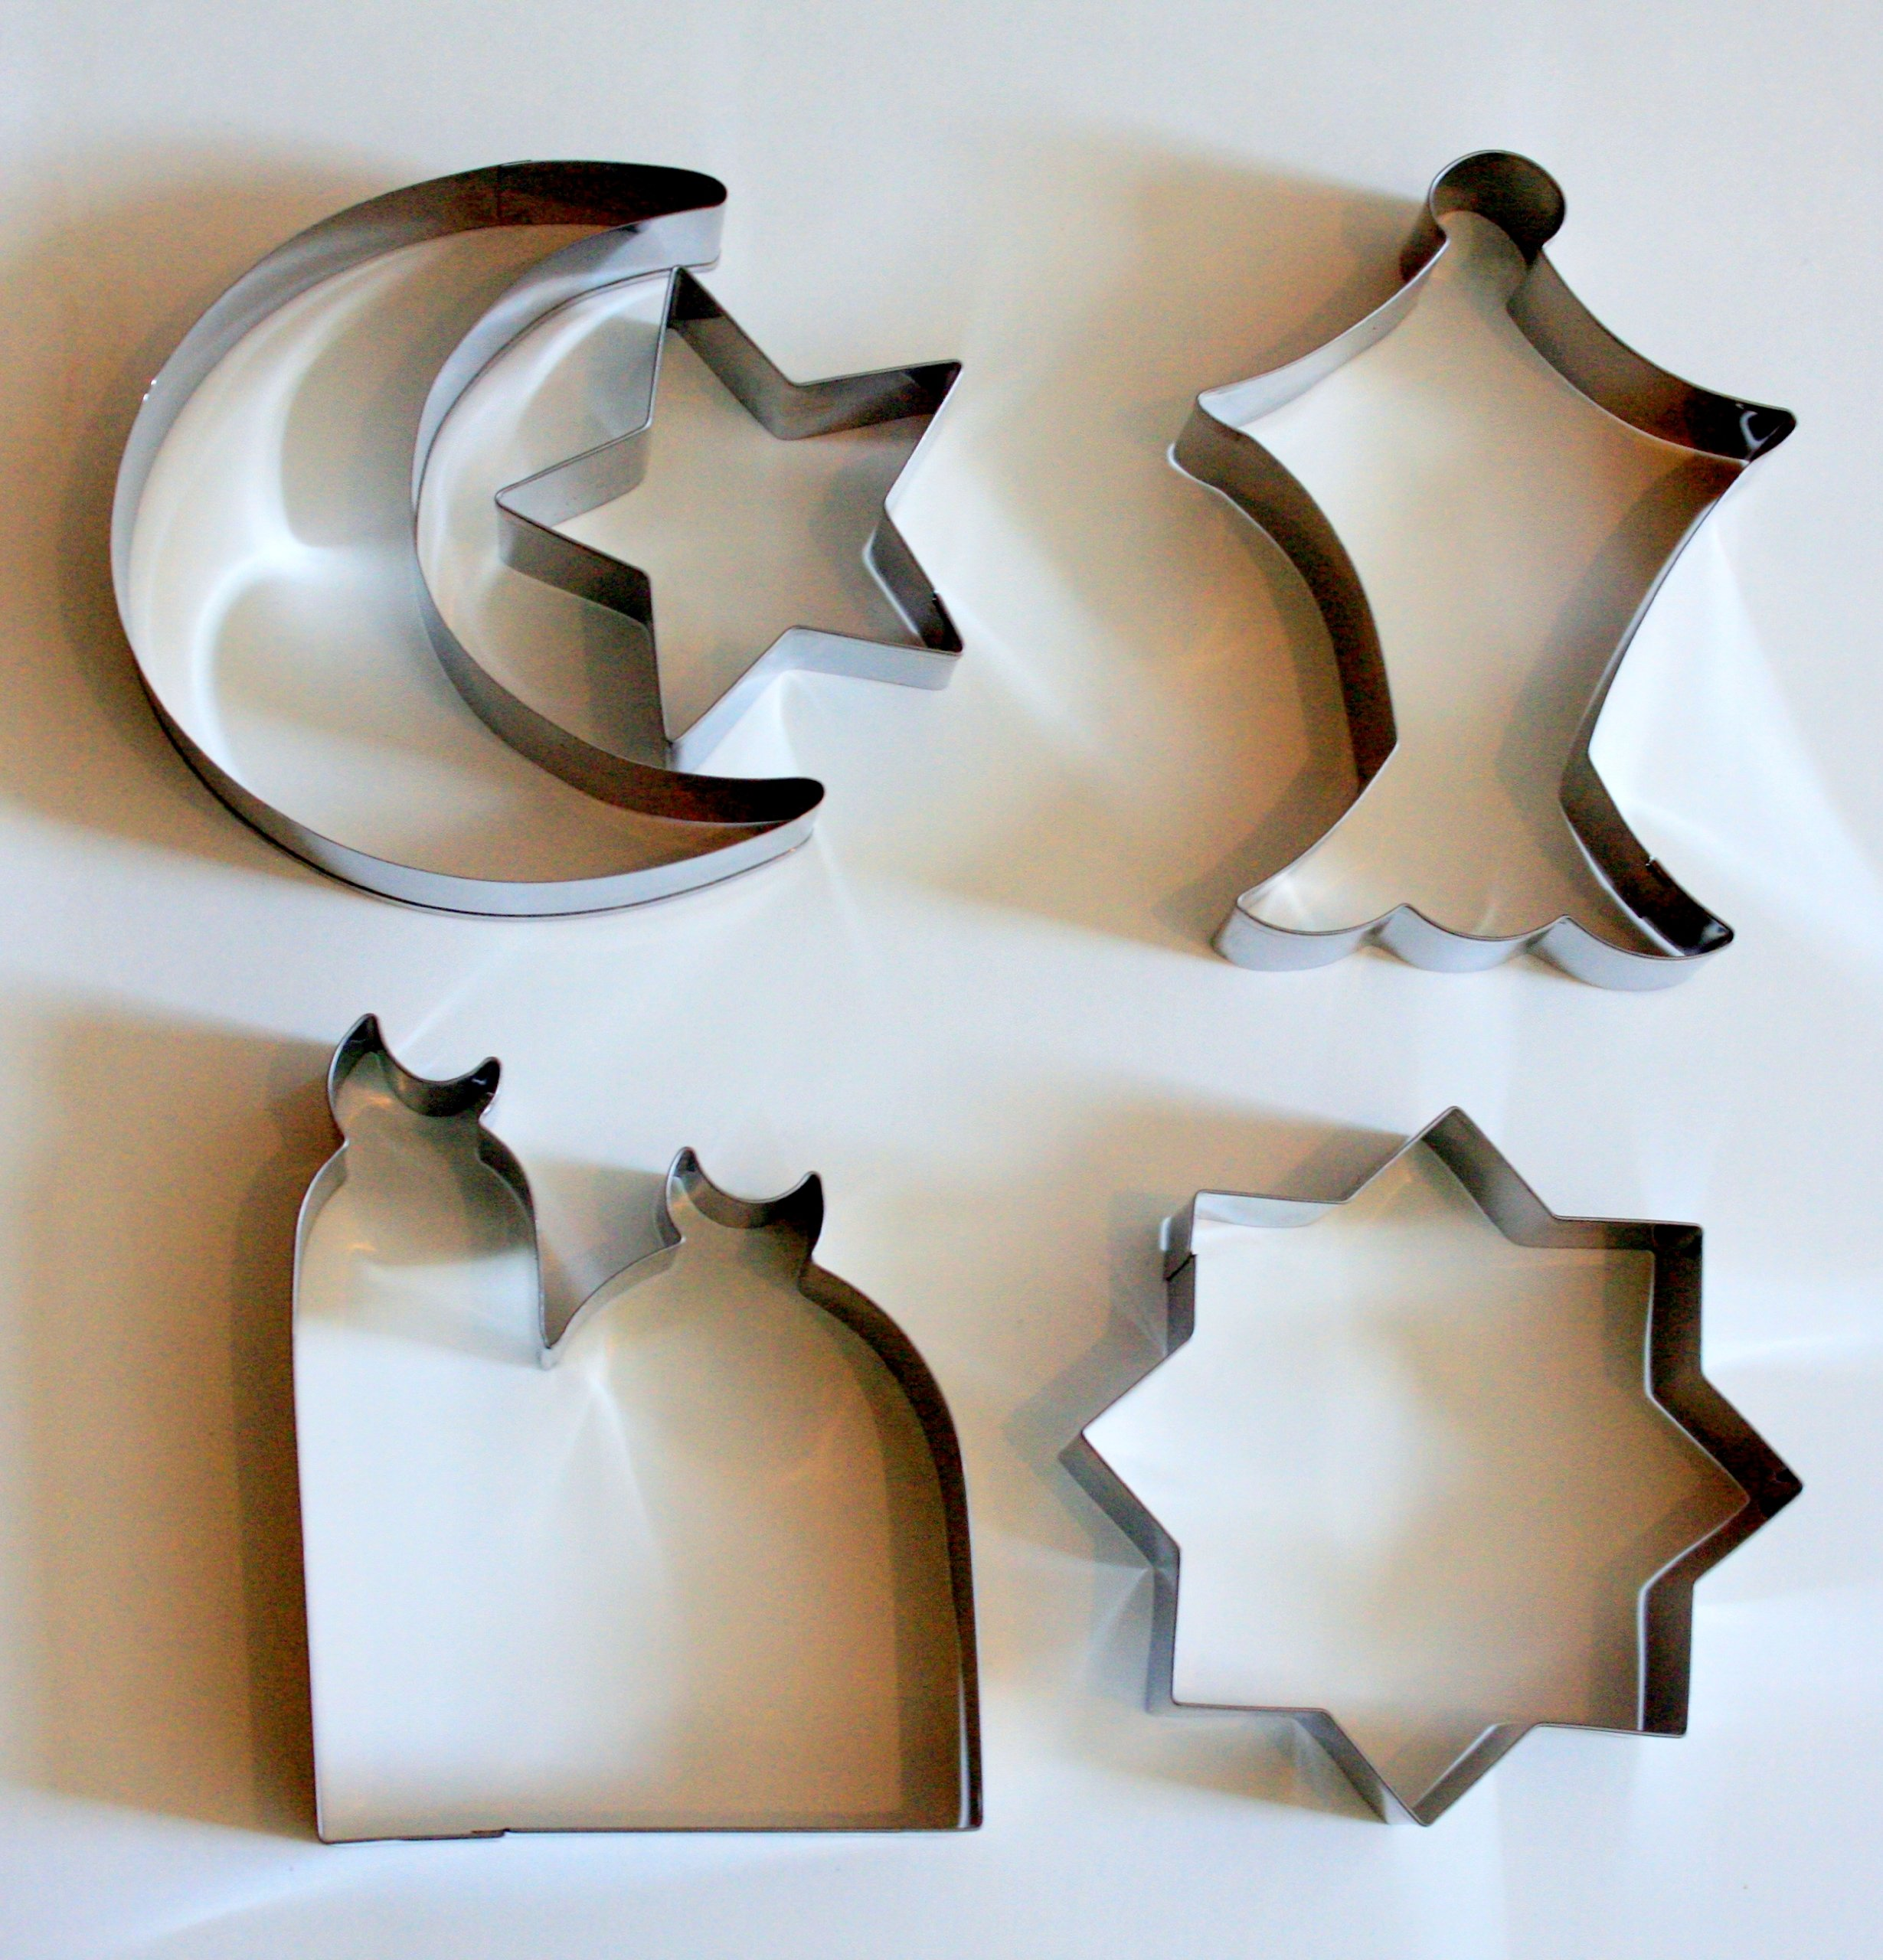 Islamic Eid & Ramadan Cookie Cutter Set - 5 Stainless Steel Cutters